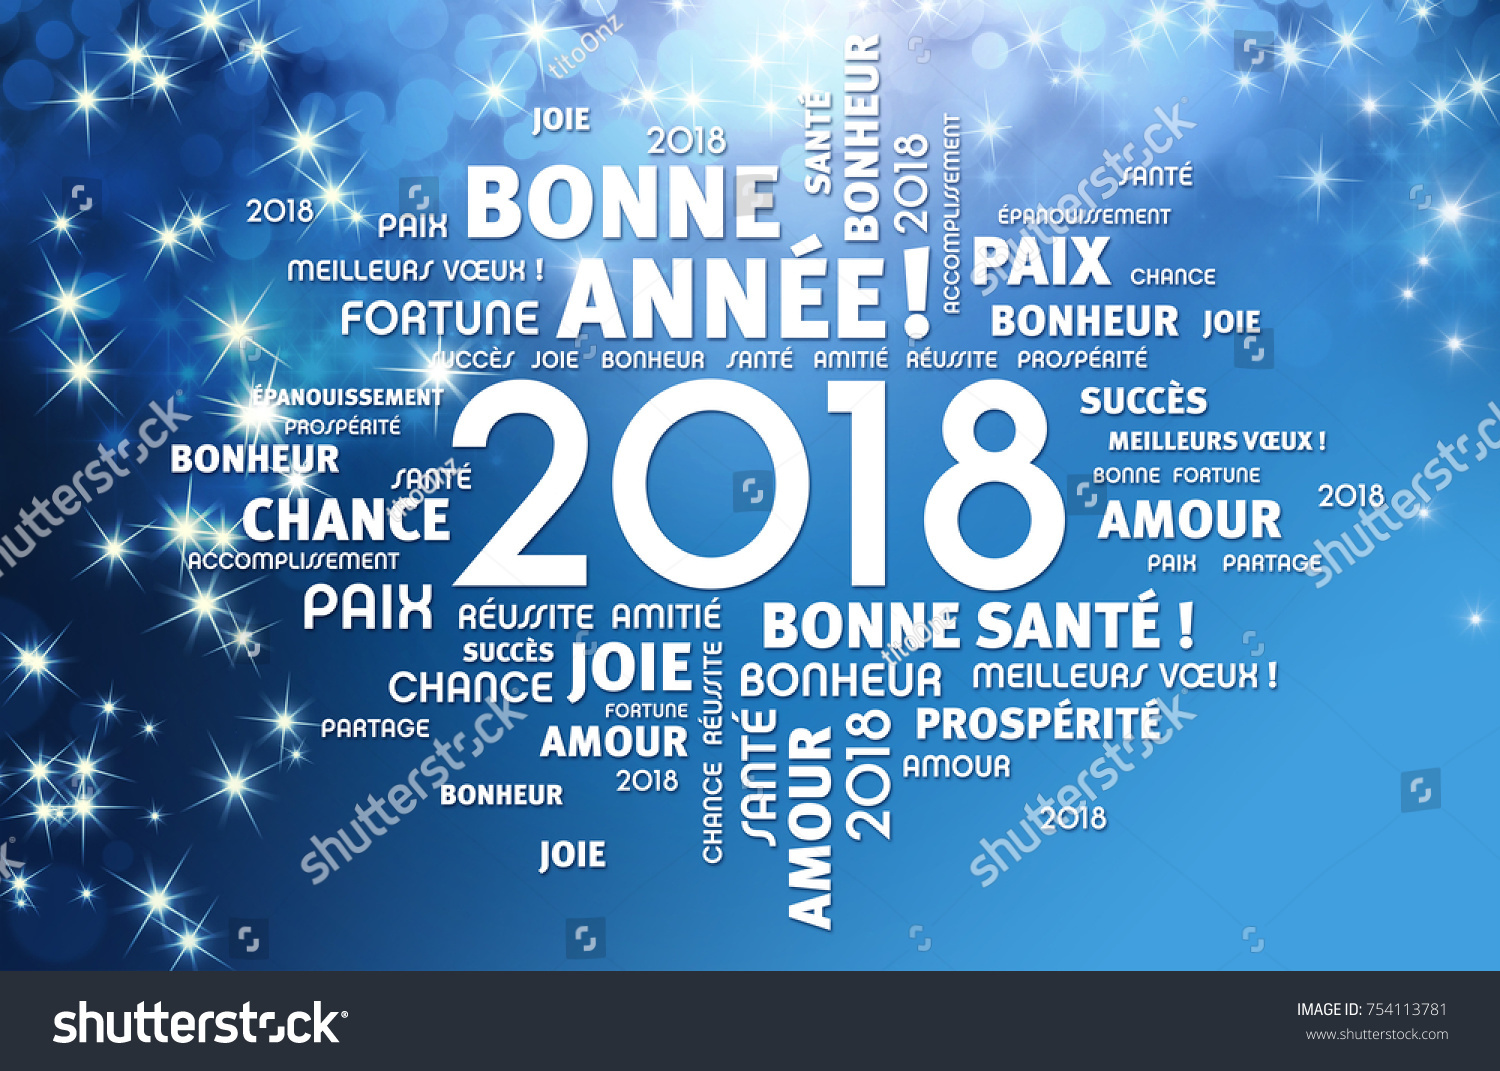 Greeting words french around new year stock illustration 754113781 greeting words in french around new year date 2018 on a festive blue background kristyandbryce Choice Image